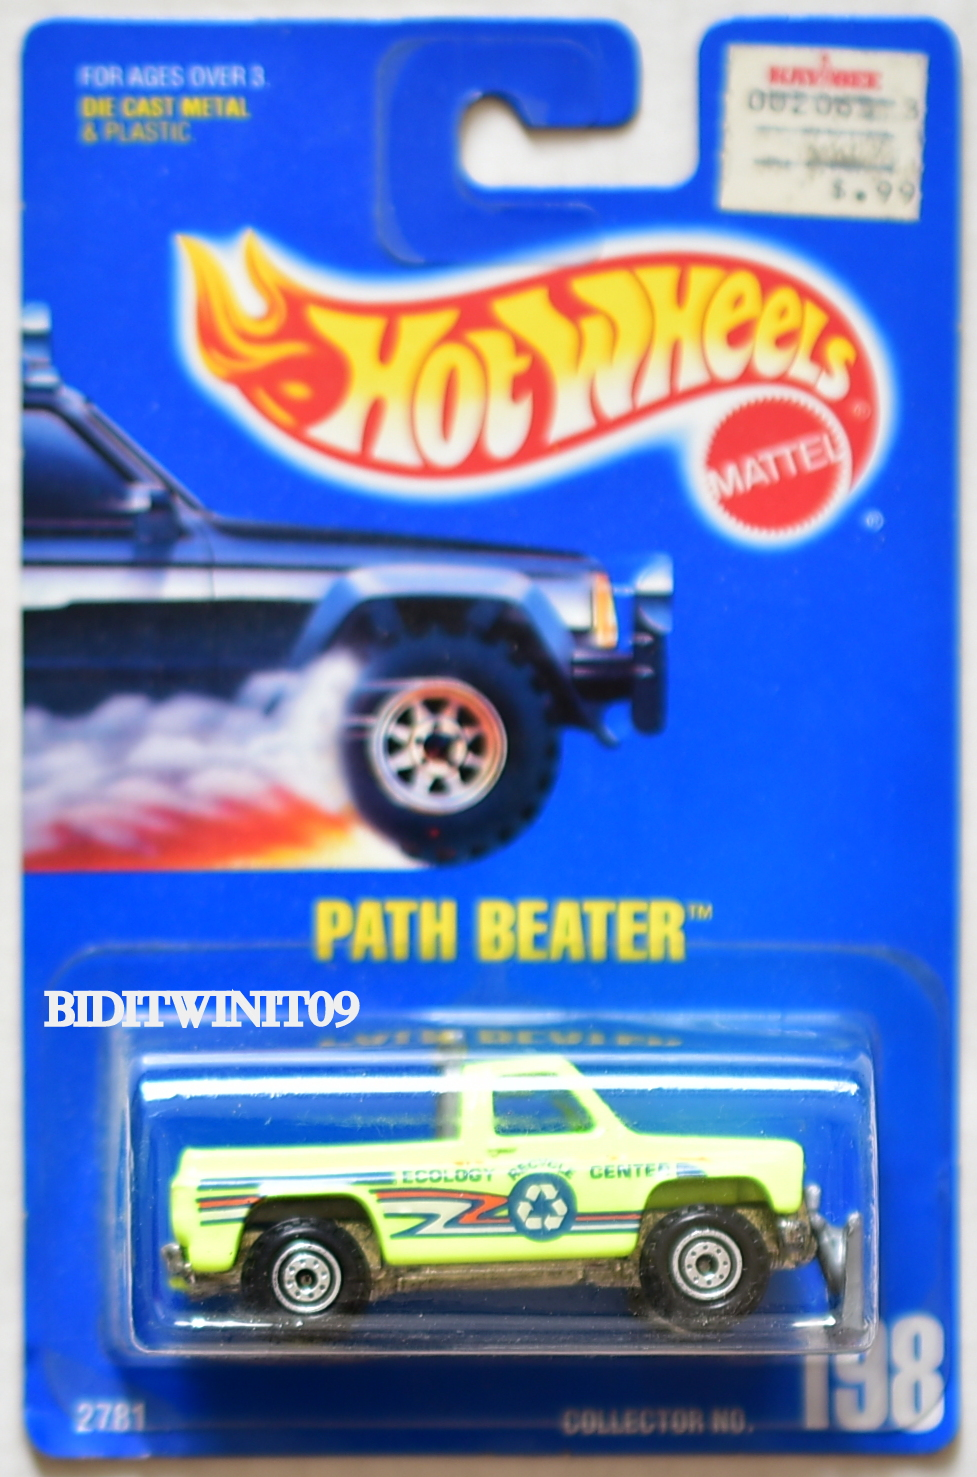 HOT WHEELS 1991 BLUE CARD PATH BEATER #198 YELLOW 13